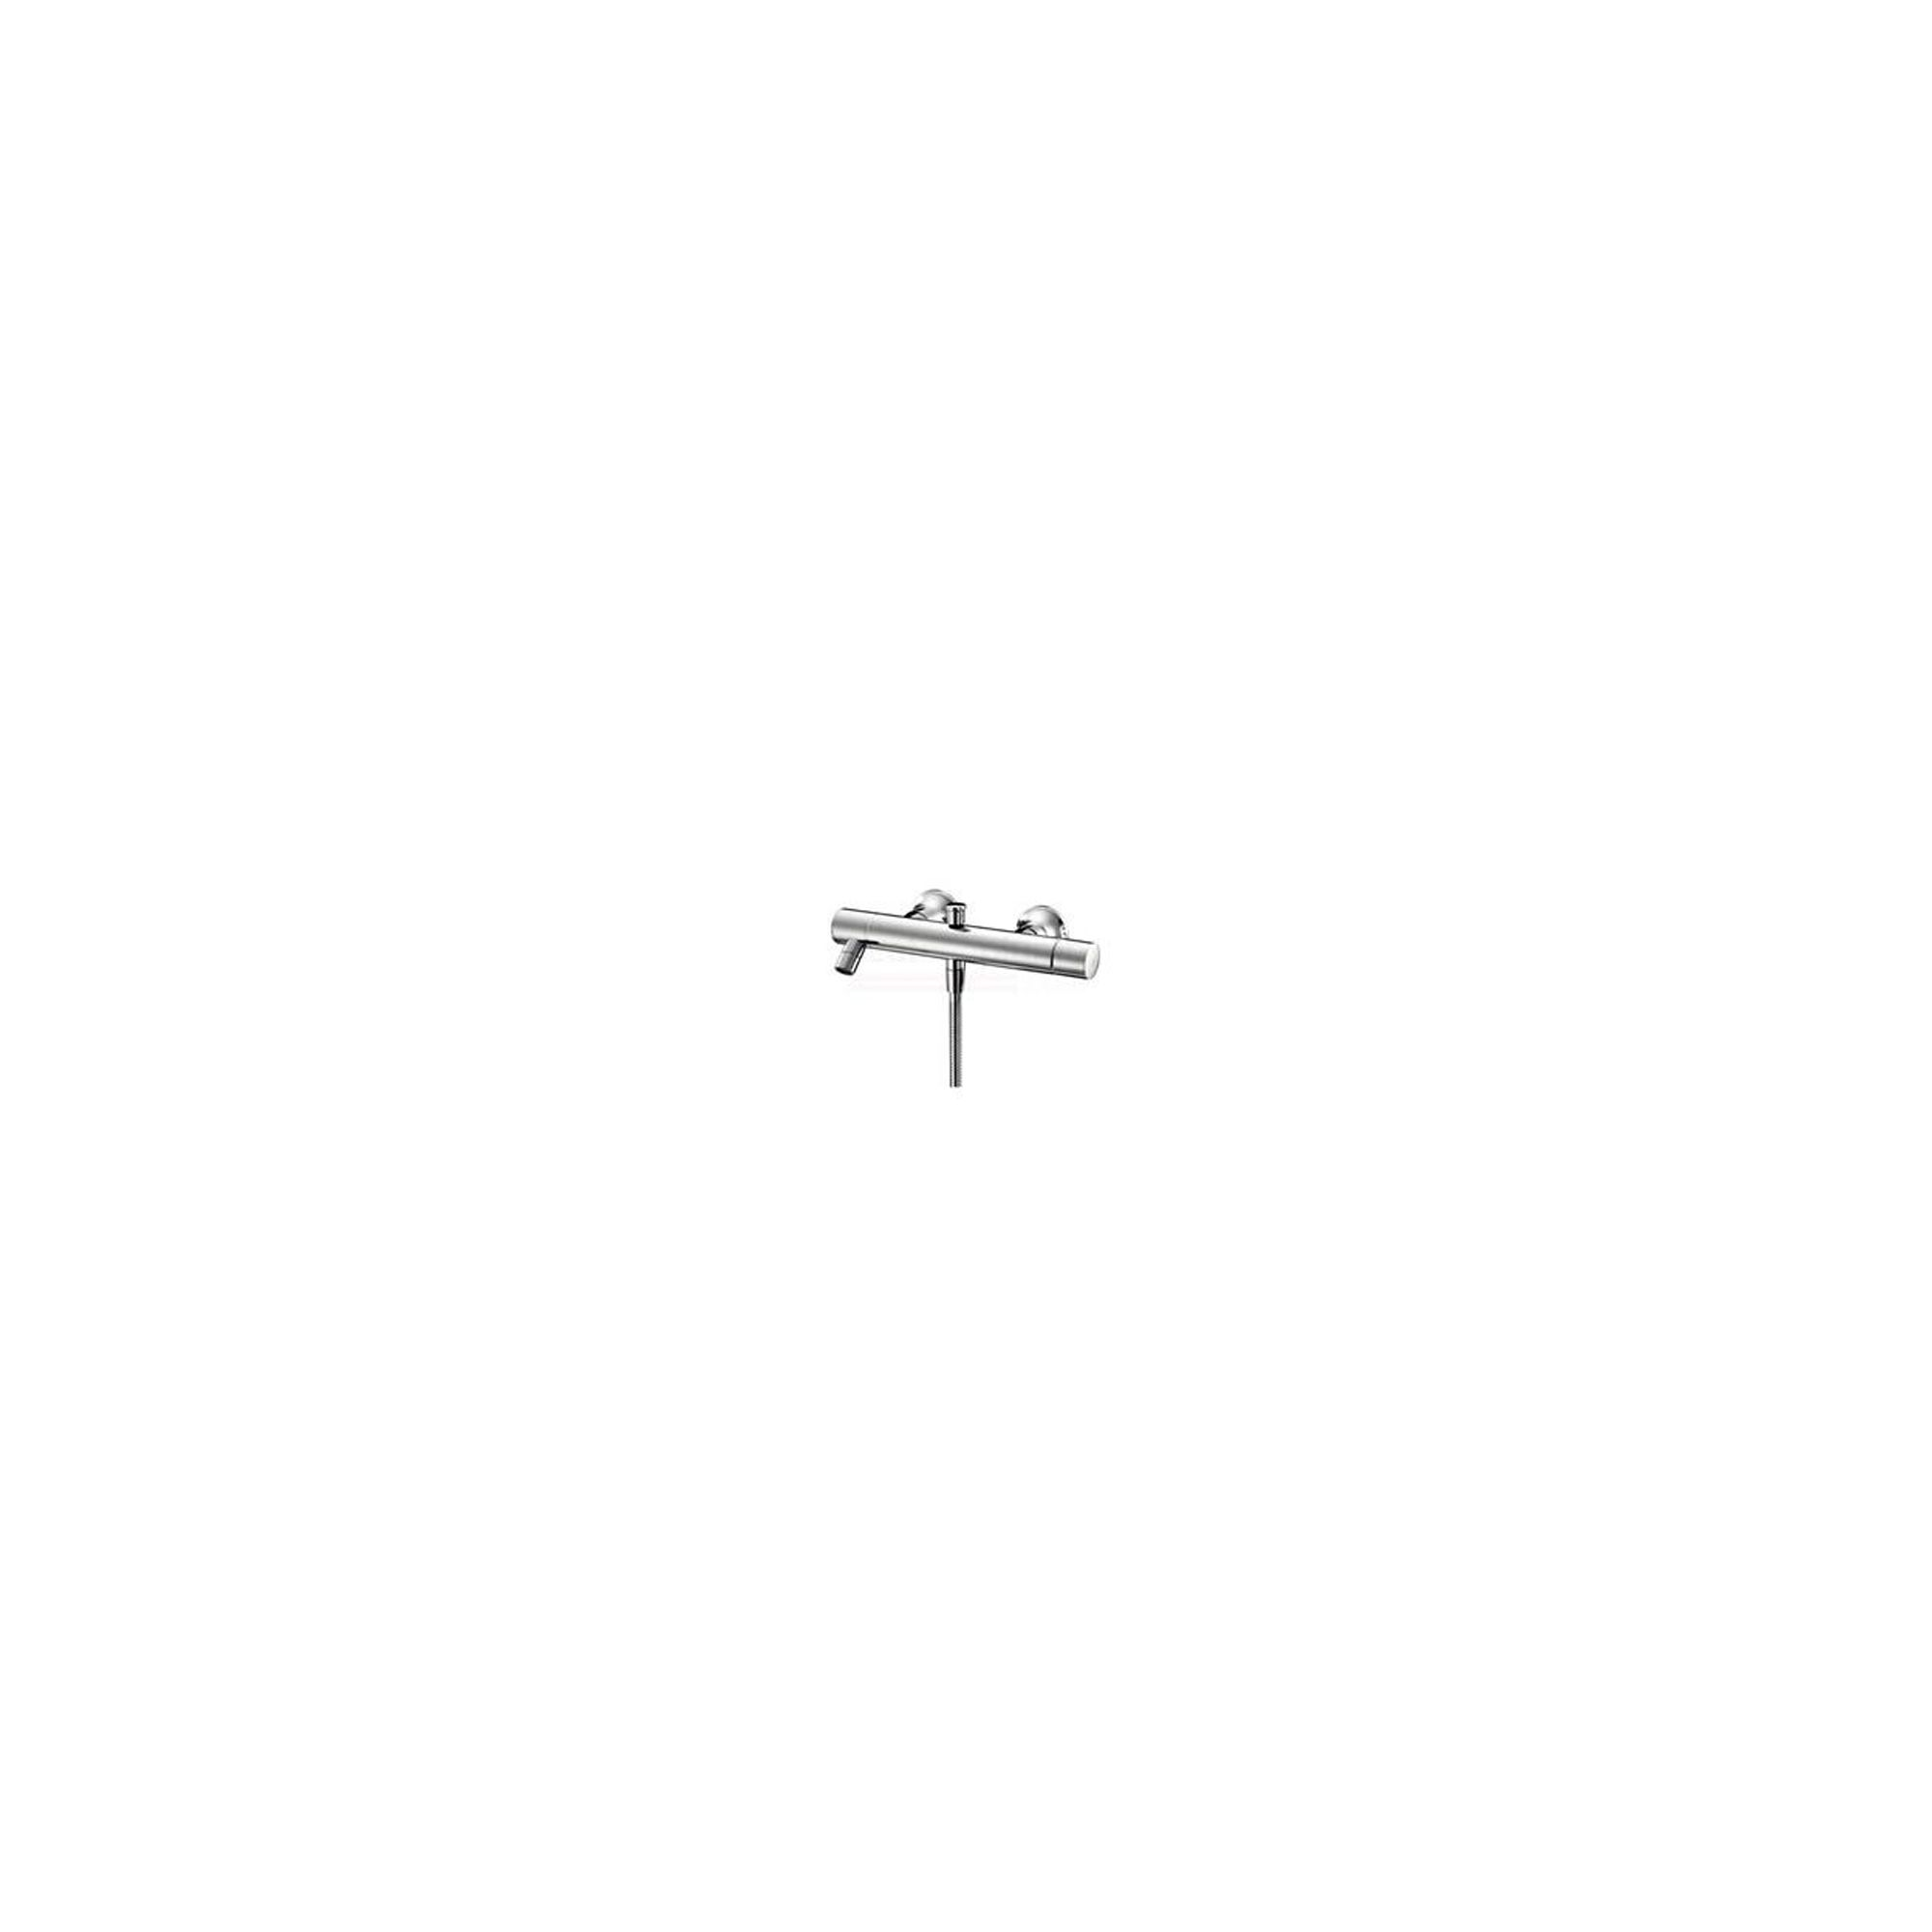 Ideal Standard Alfiere Exposed Bath Shower Mixer Tap Chrome at Tesco Direct